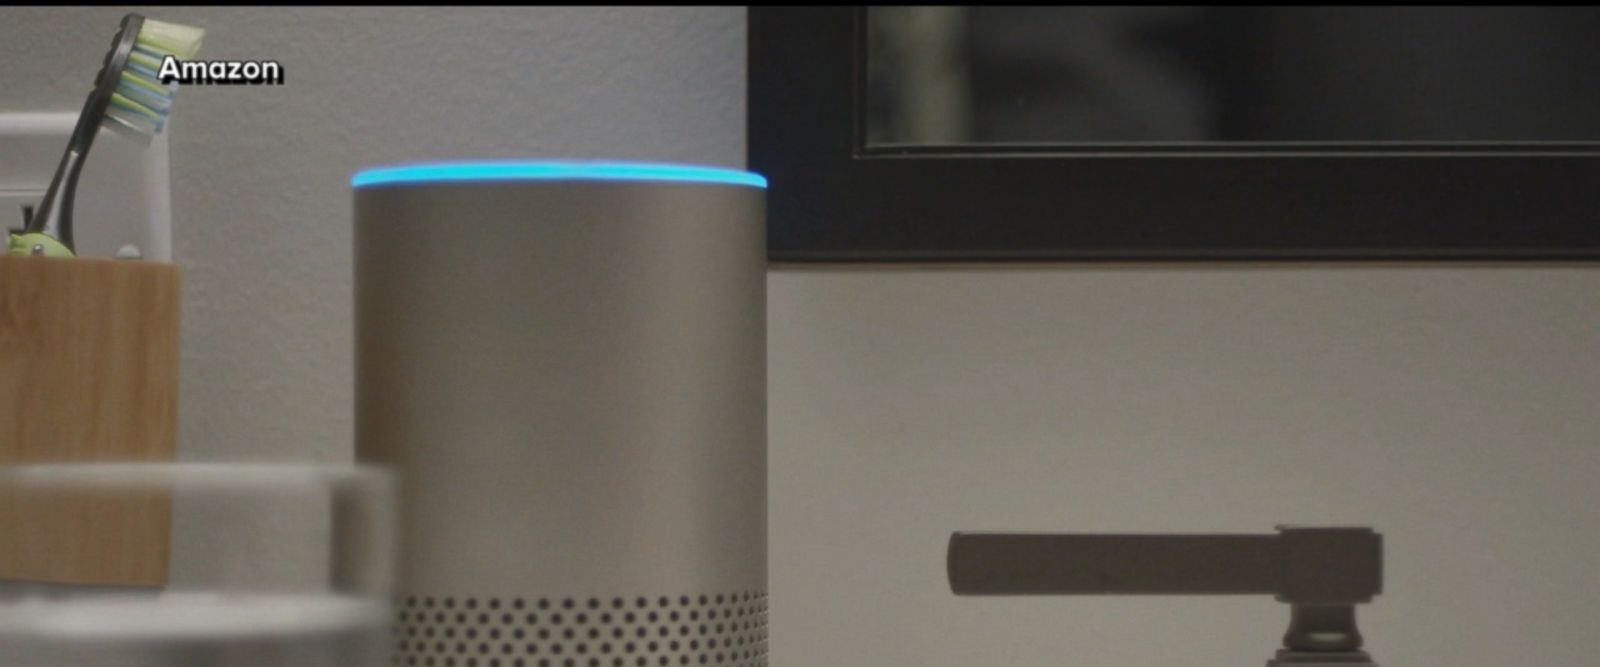 "VIDEO: Amazon chalked up its voice-controlled speaker's error to an ""extremely rare occurrence."""